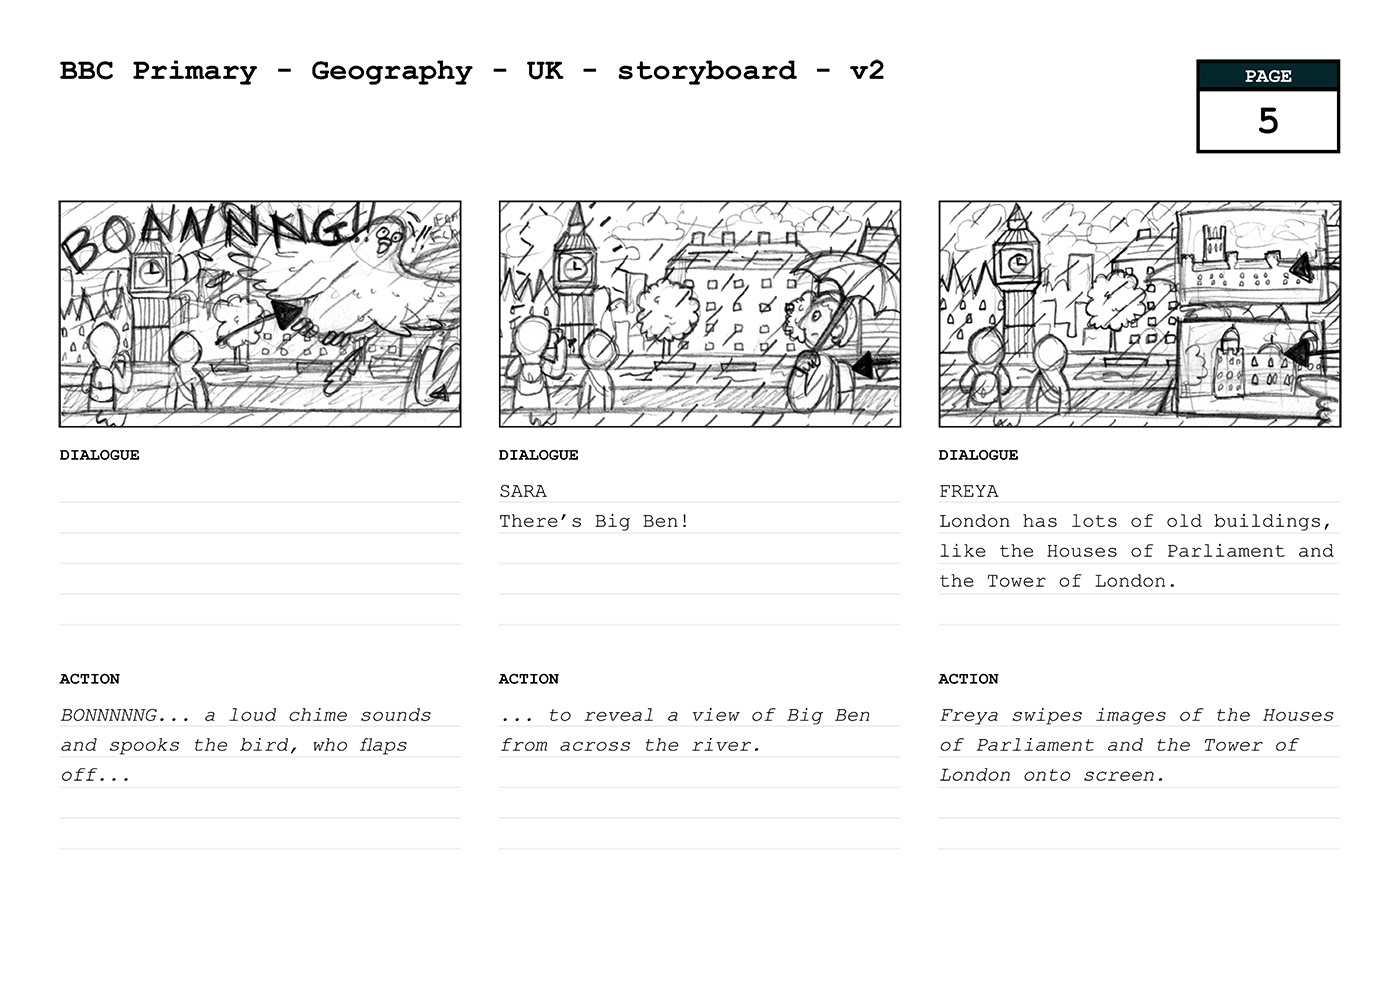 Sample storyboard page for a Geography animation.